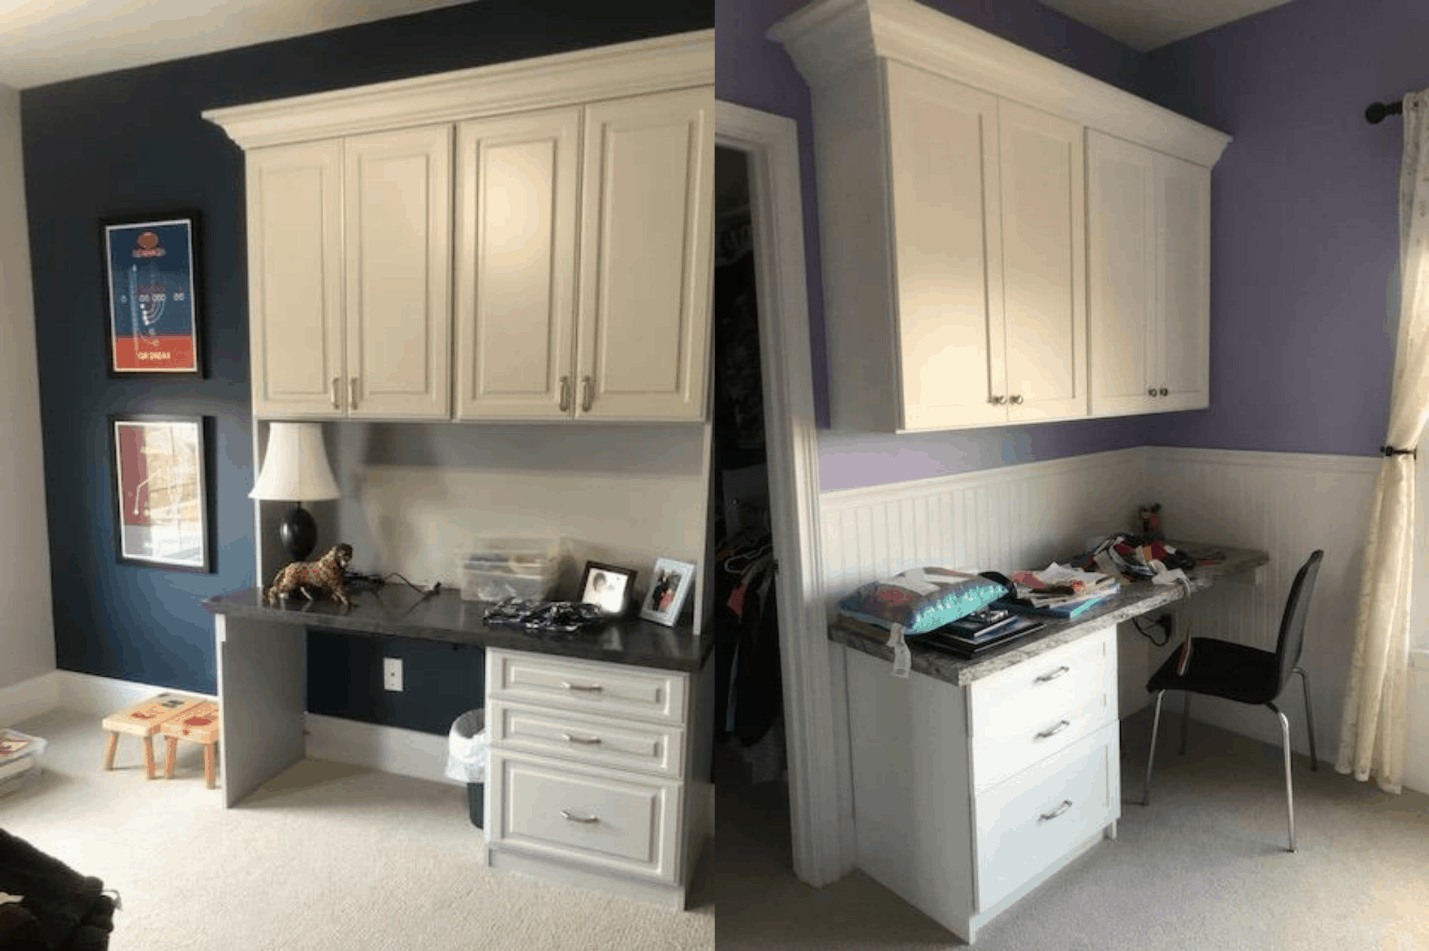 Examples of homework stations designed by Closets by Design